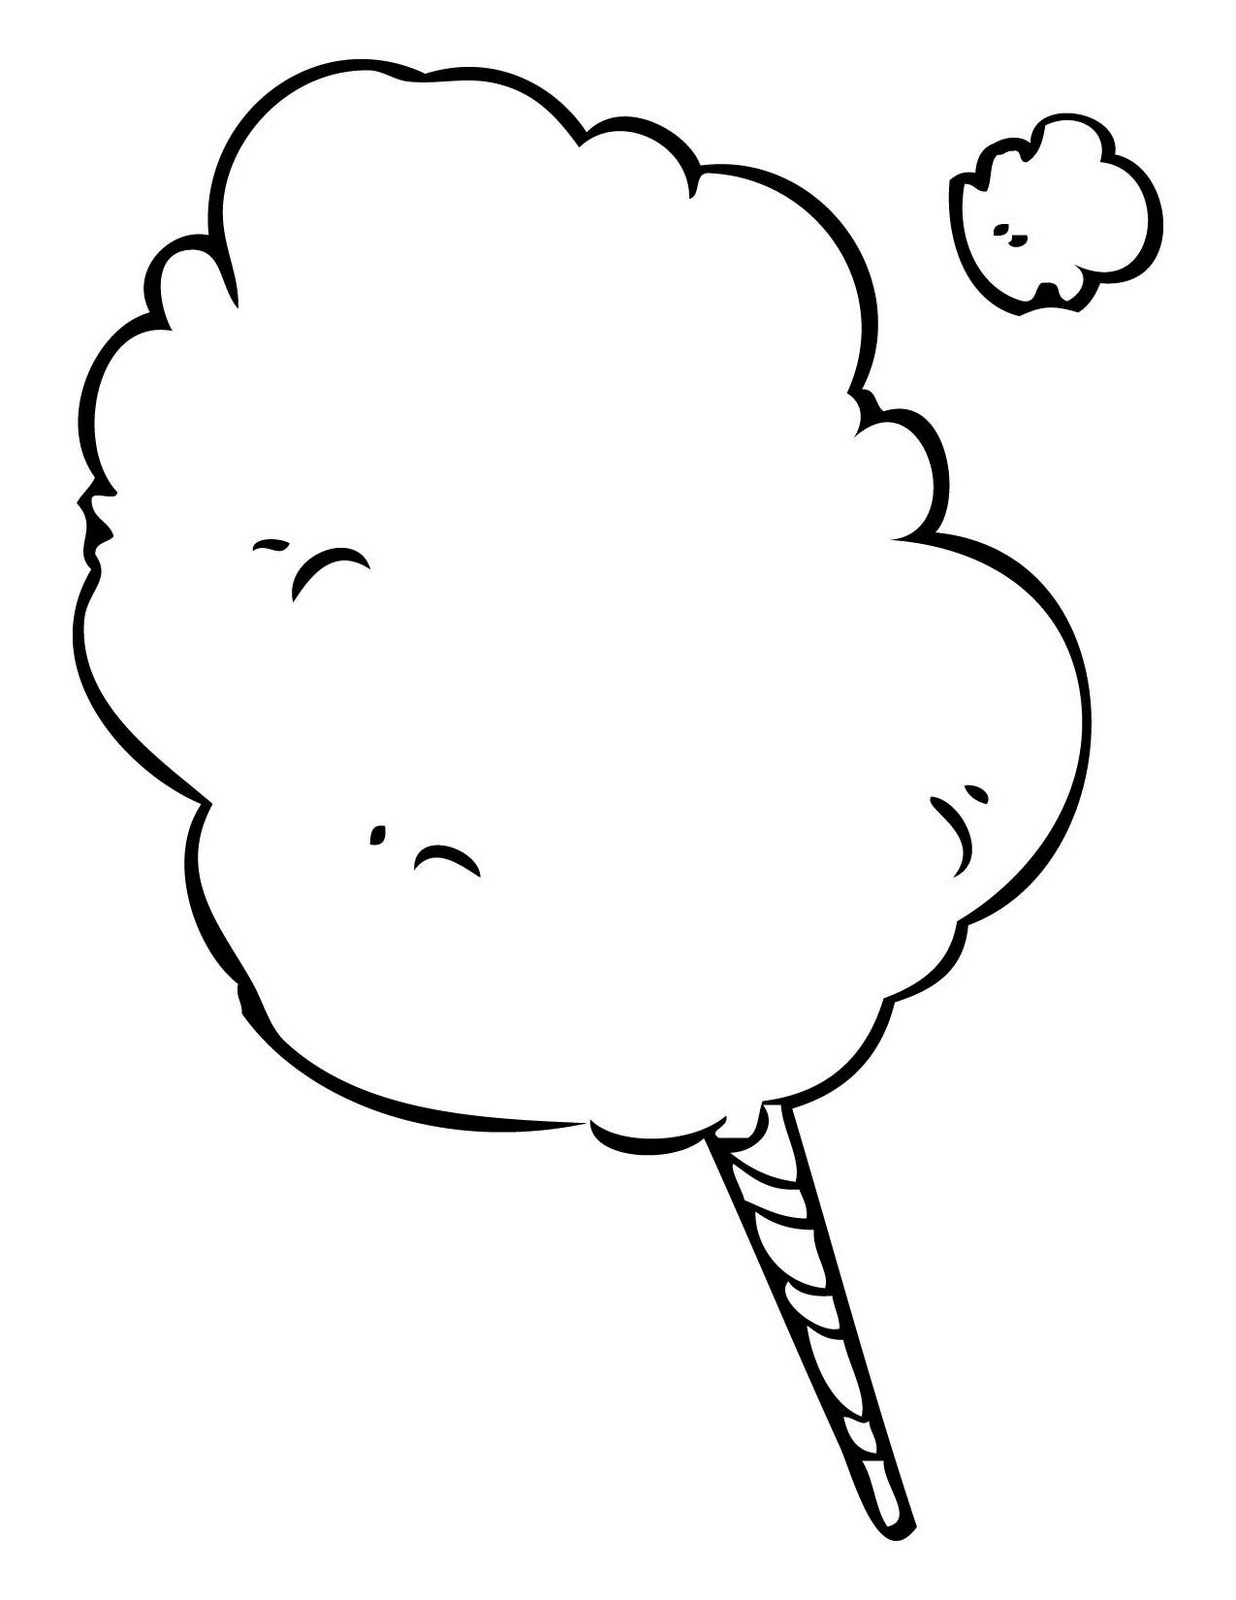 Candy Cane clipart cotton candy Art Free Clipartix free download